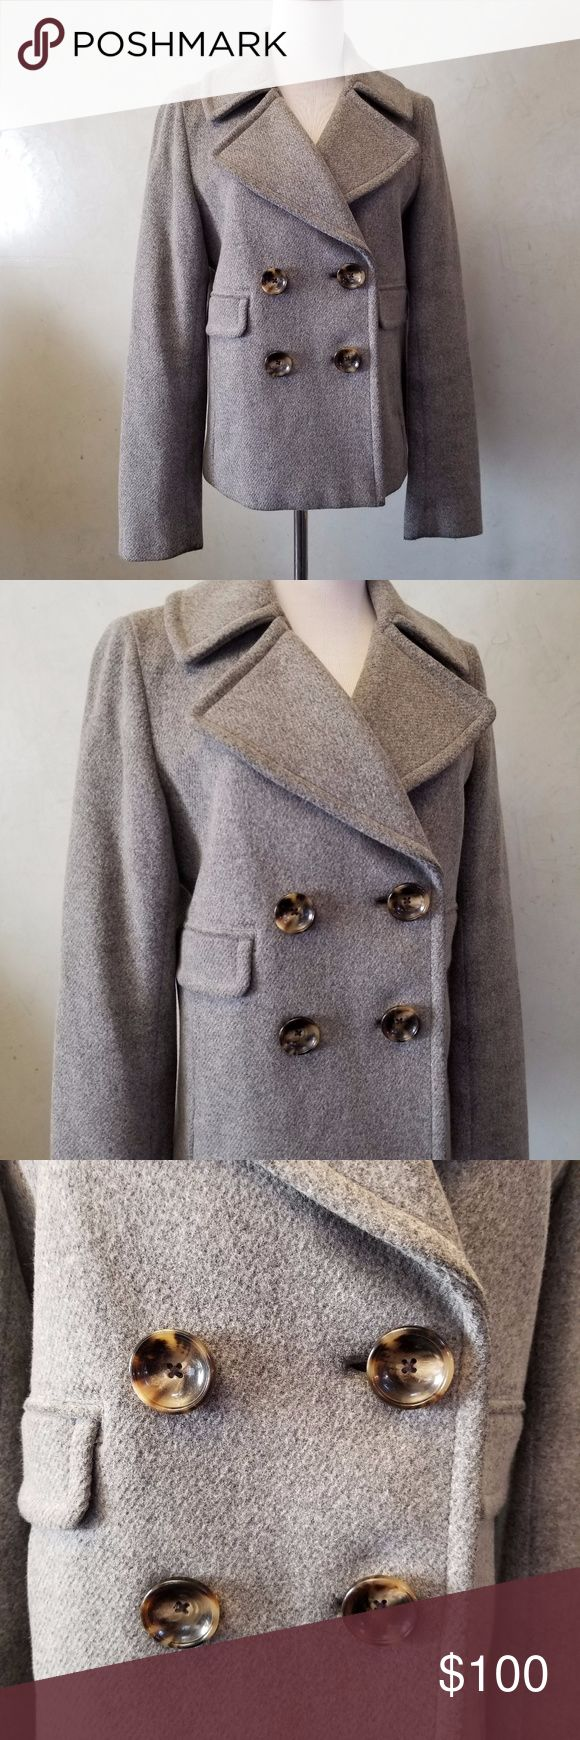 NWOT Banana Republic Pea coat New with out tags banana republic gray double breasted pea coat with 1 side pocked on each side and pocket flaps Banana Republic Jackets & Coats Pea Coats